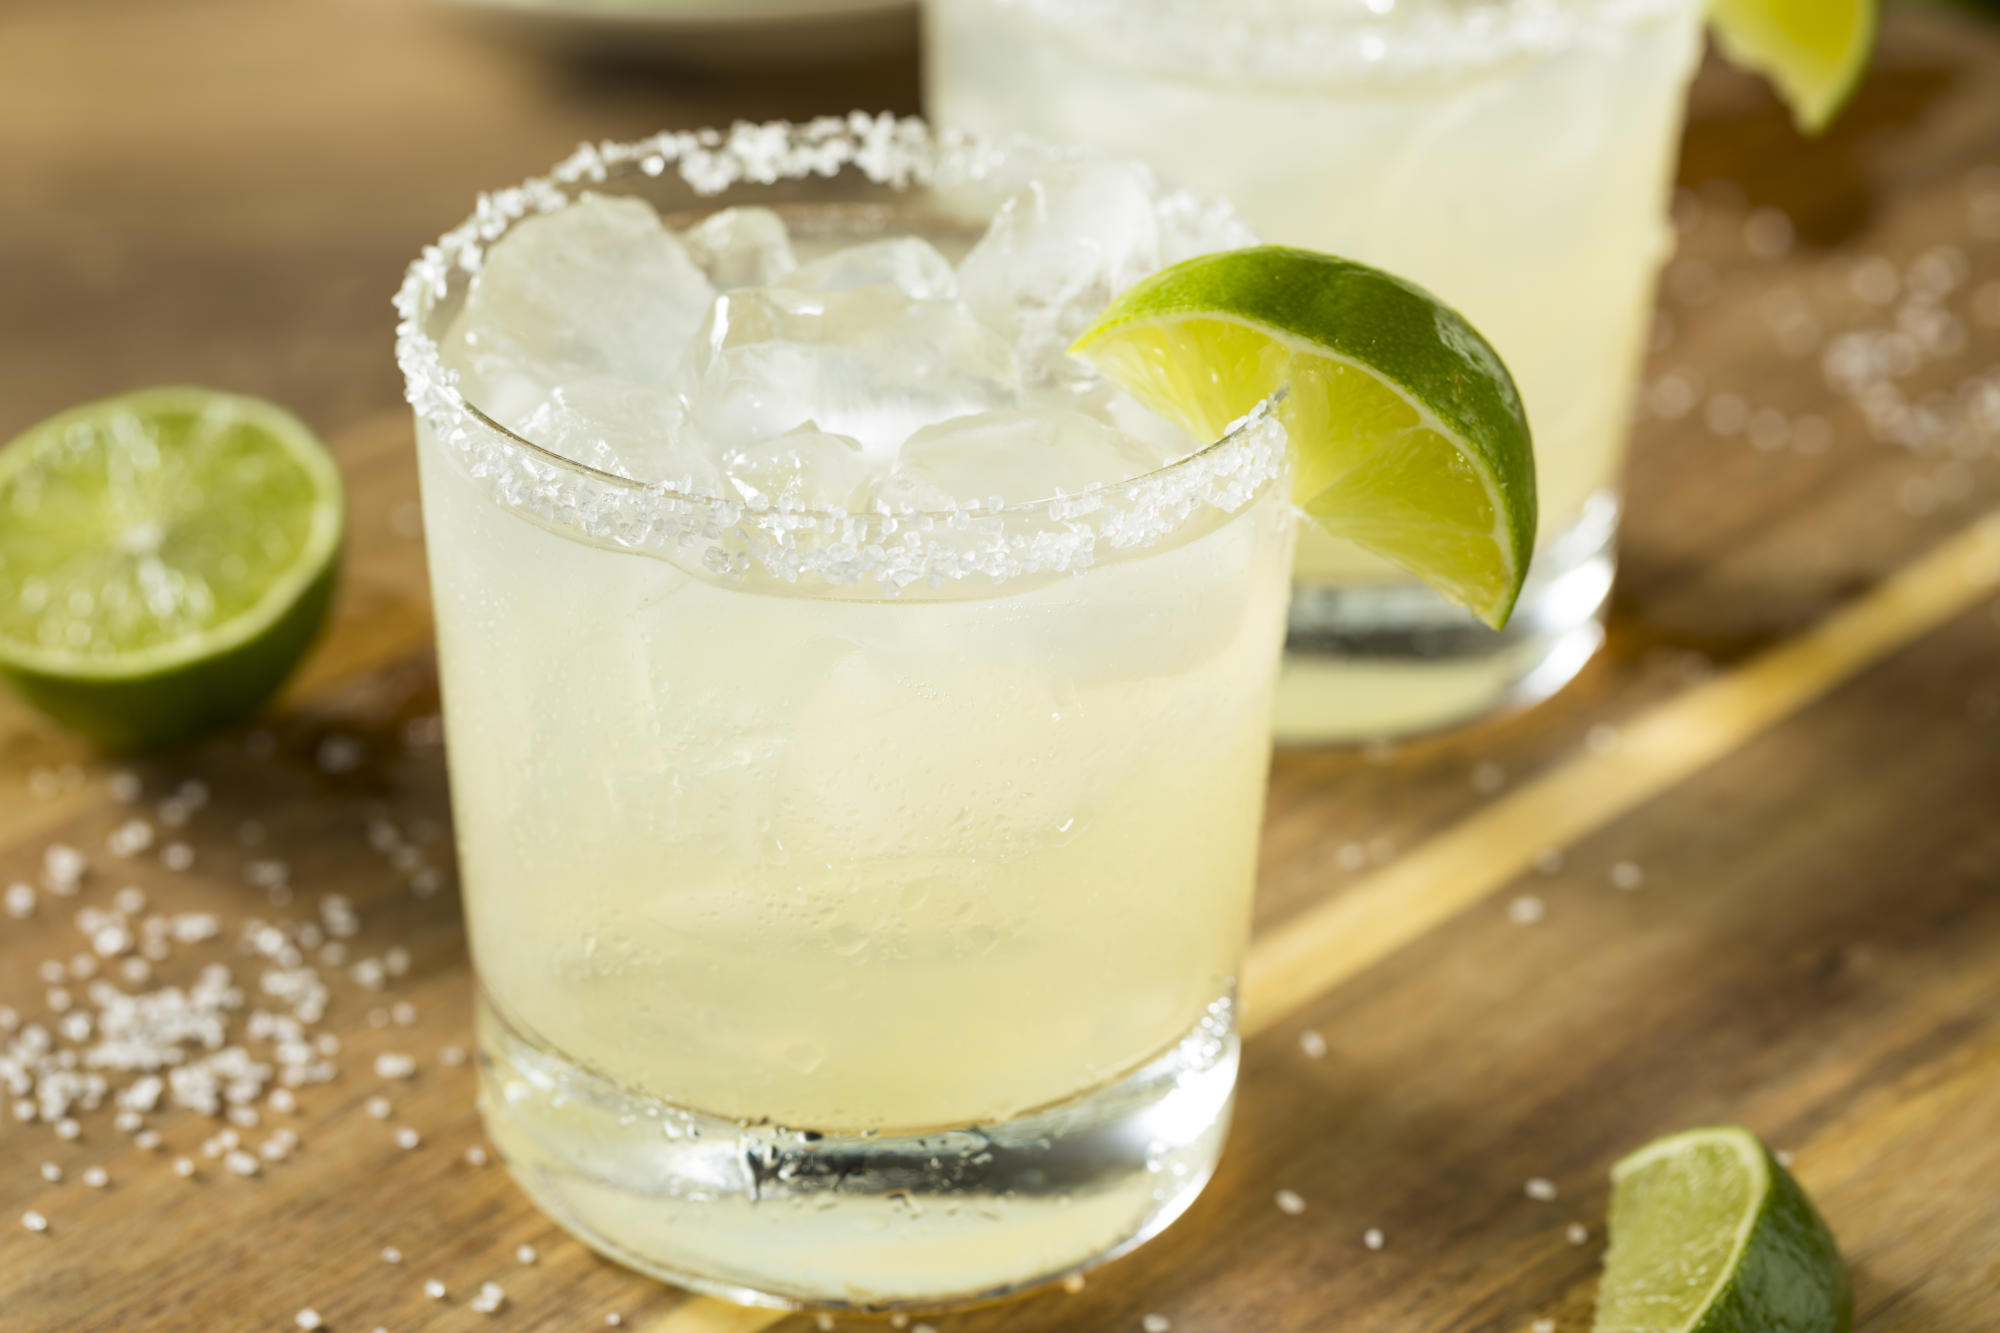 National Margarita Day: Data suggests consumers opt for virgin 'mocktails' for health reasons